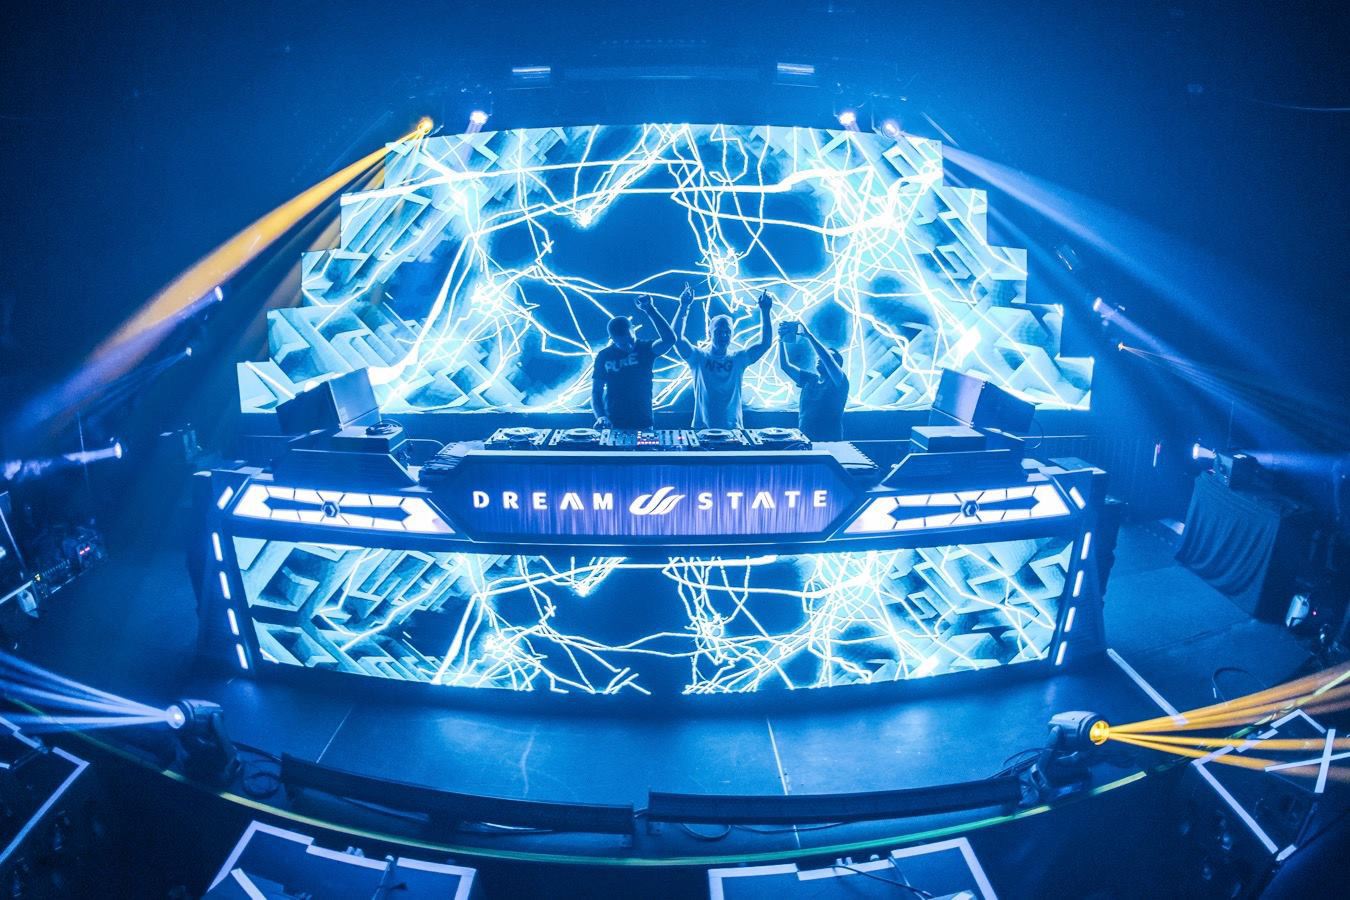 dreamstate_nyc_(7)